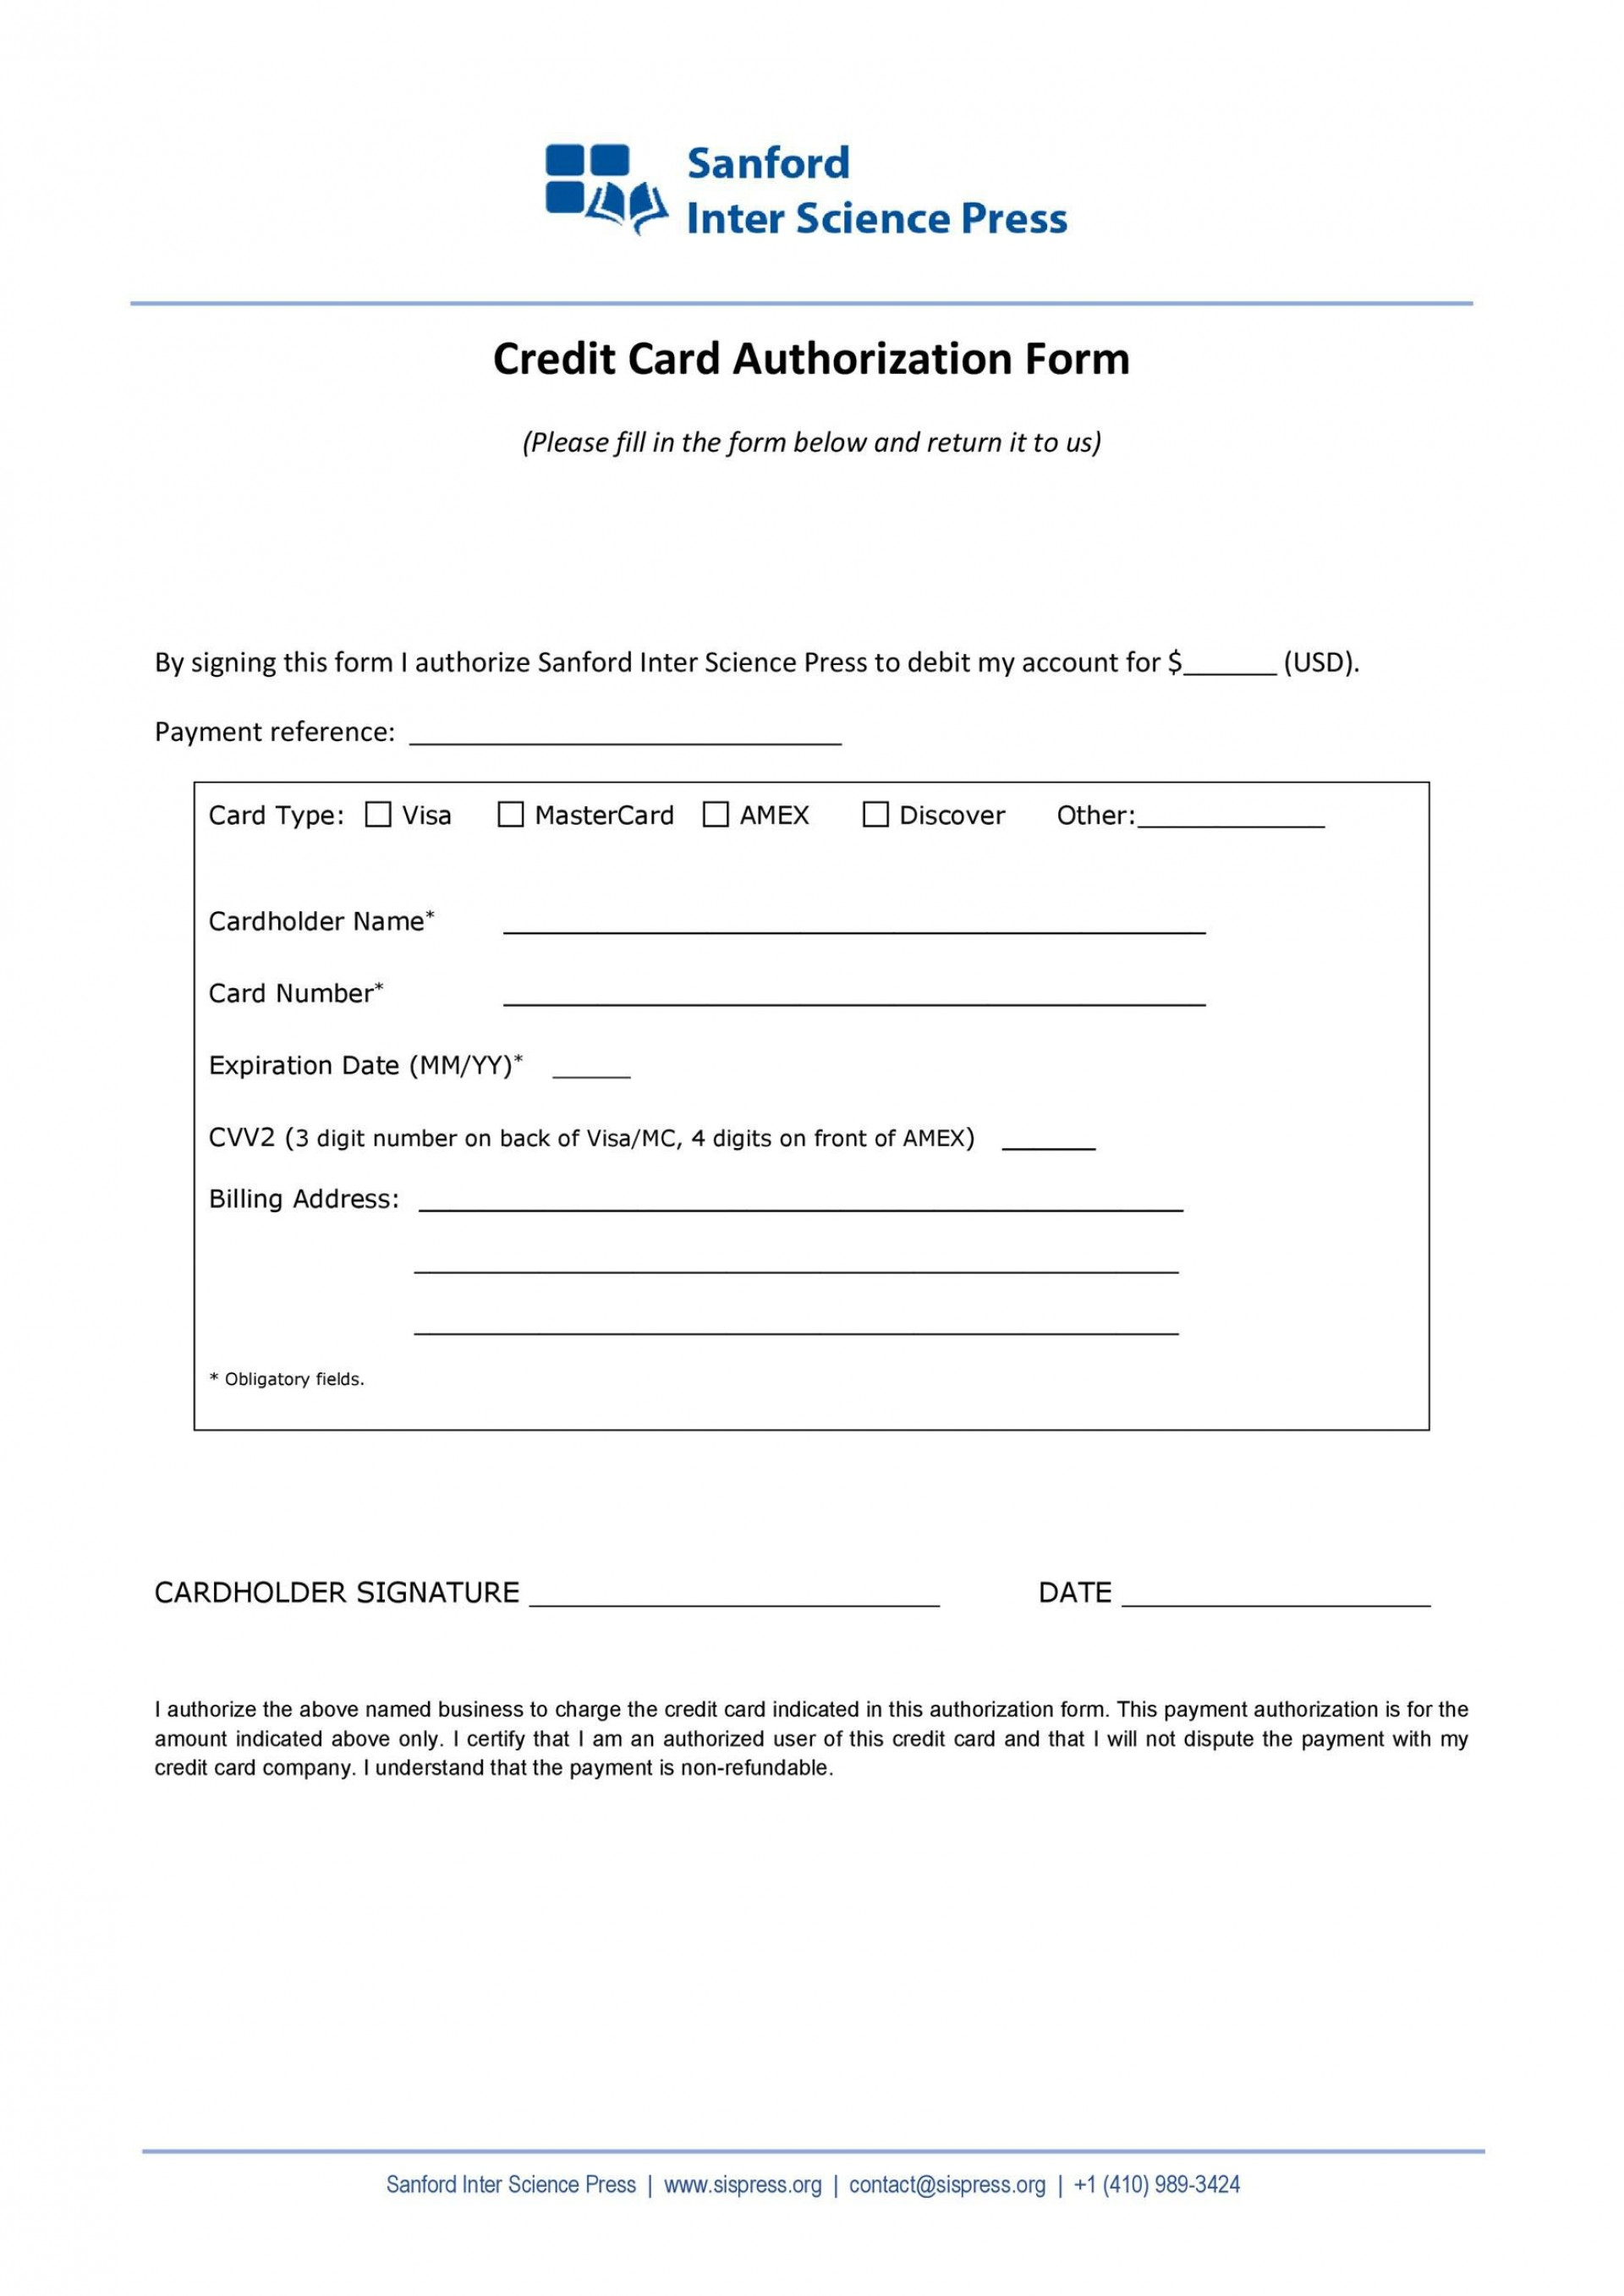 006 Impressive Credit Card Payment Form Template Html Concept 1920